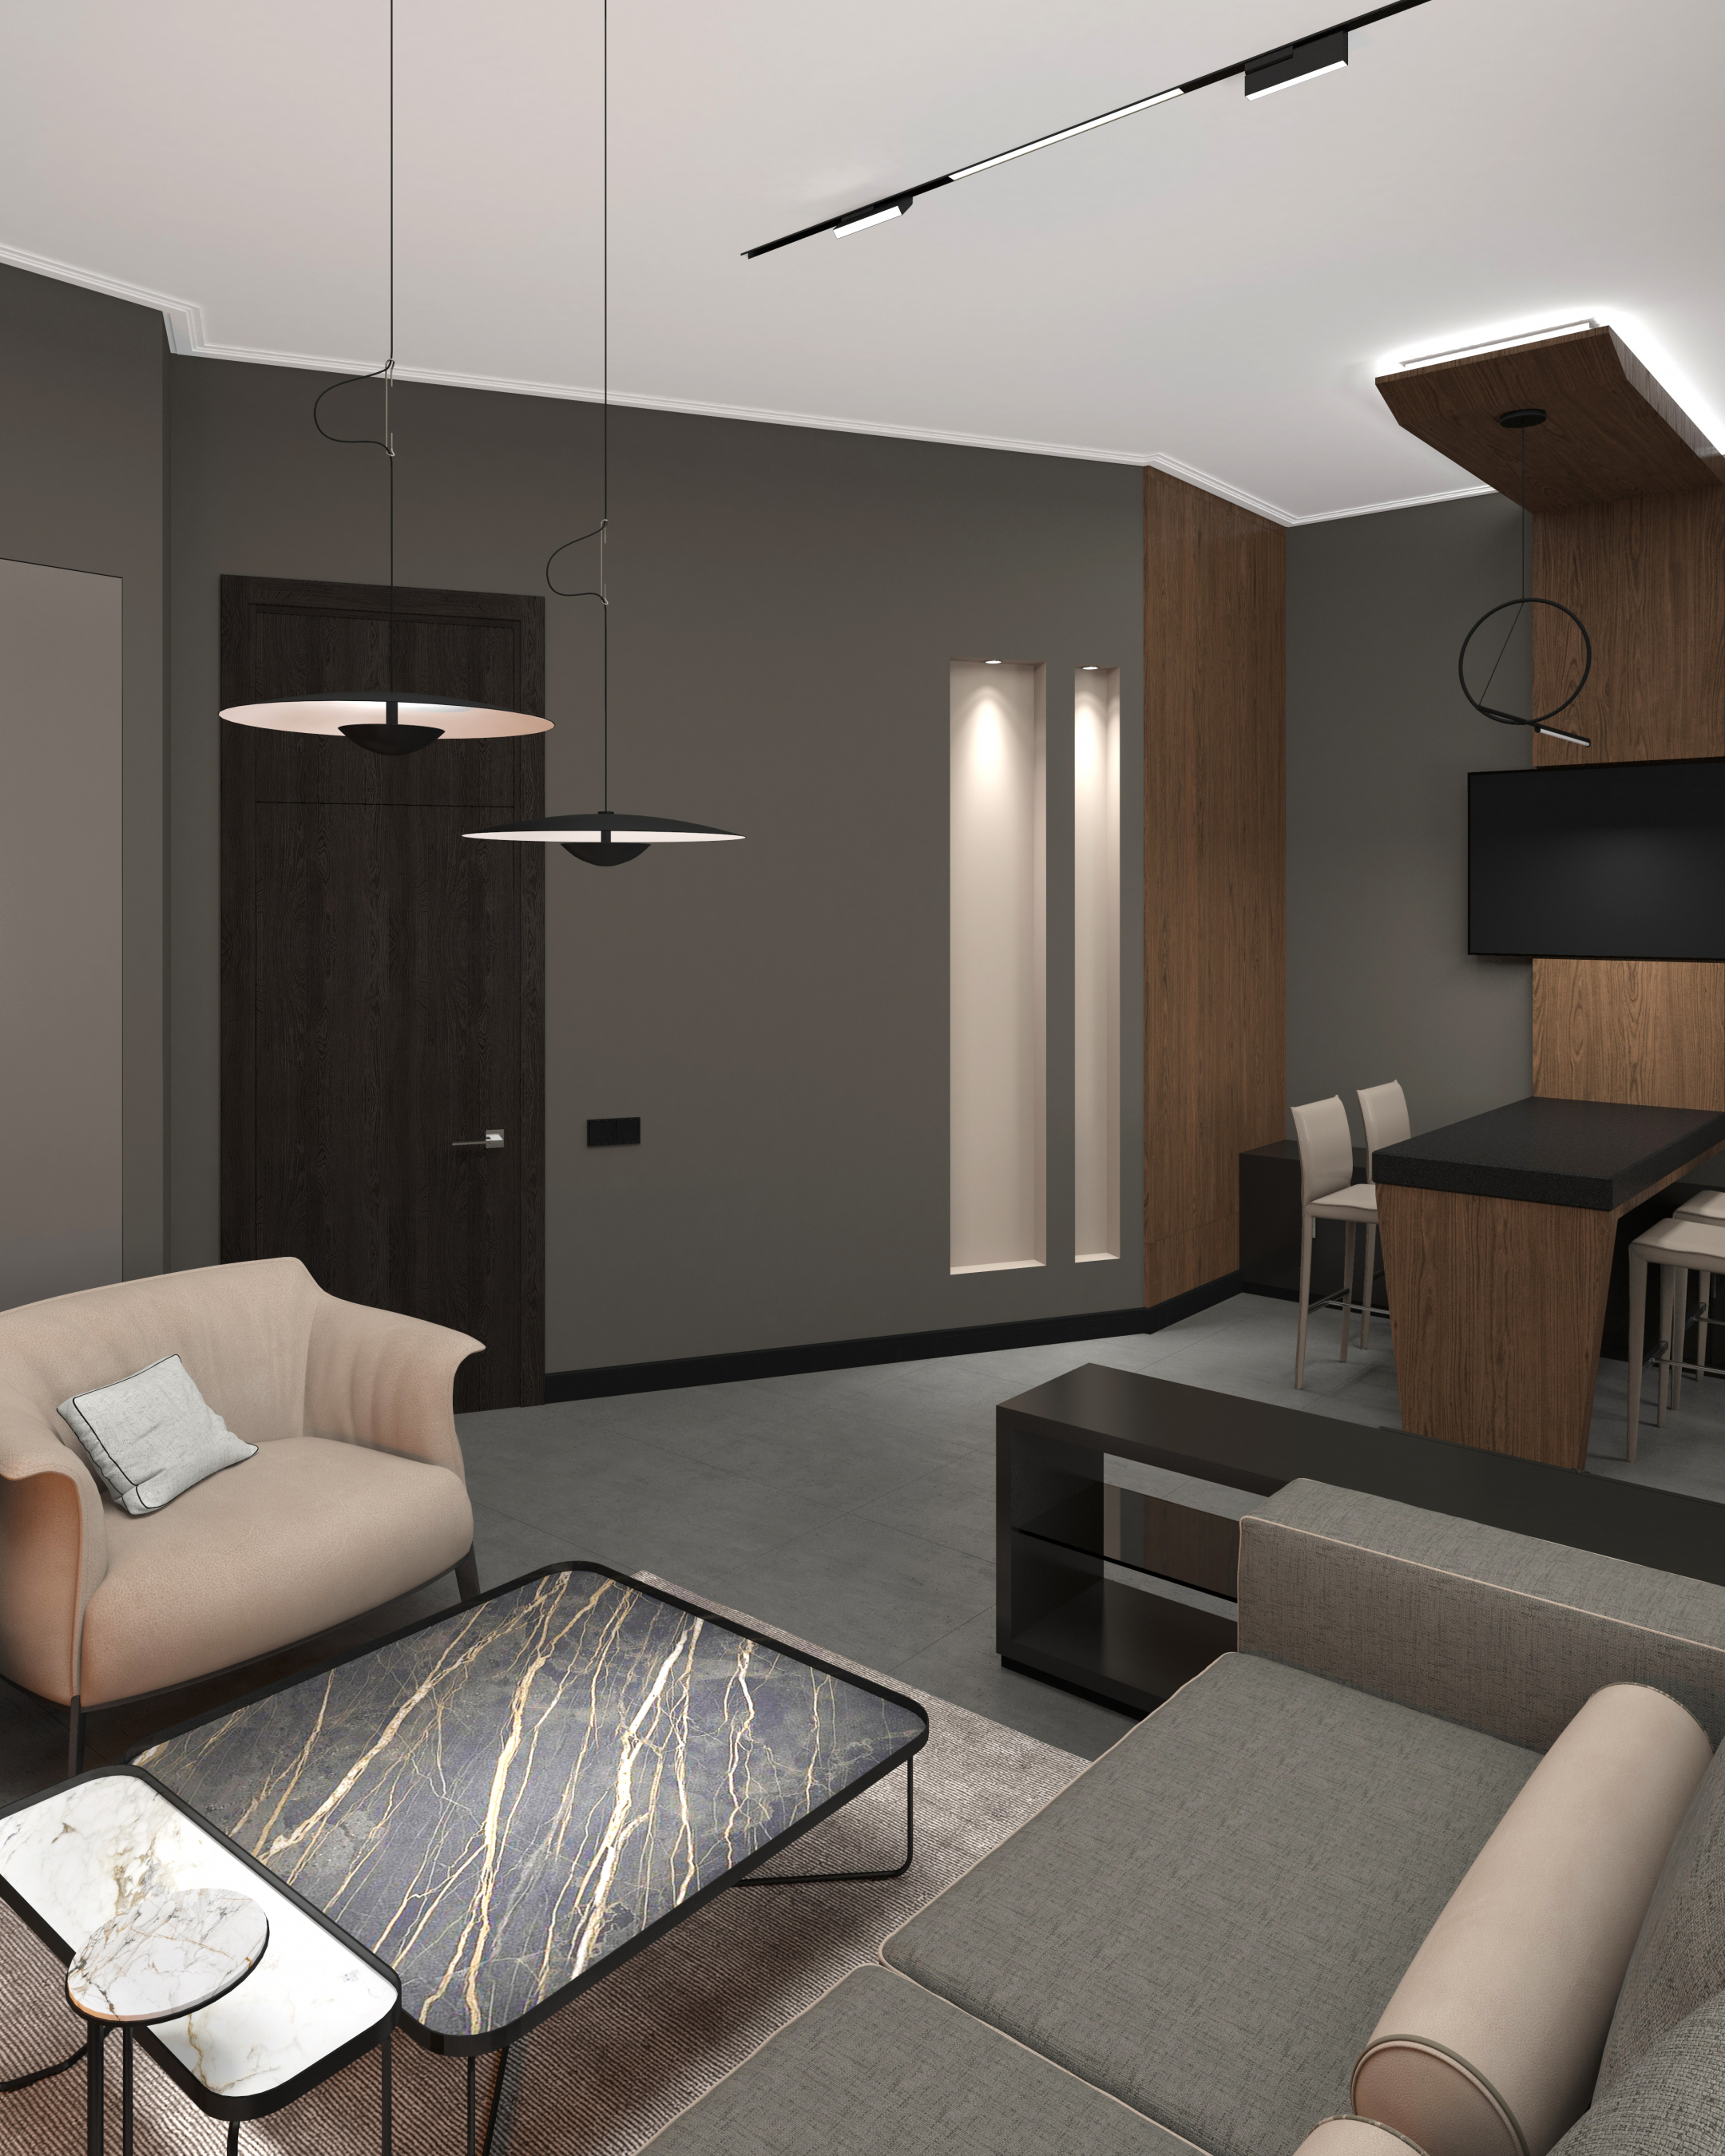 VIP meeting room in 3d max vray 3.0 image